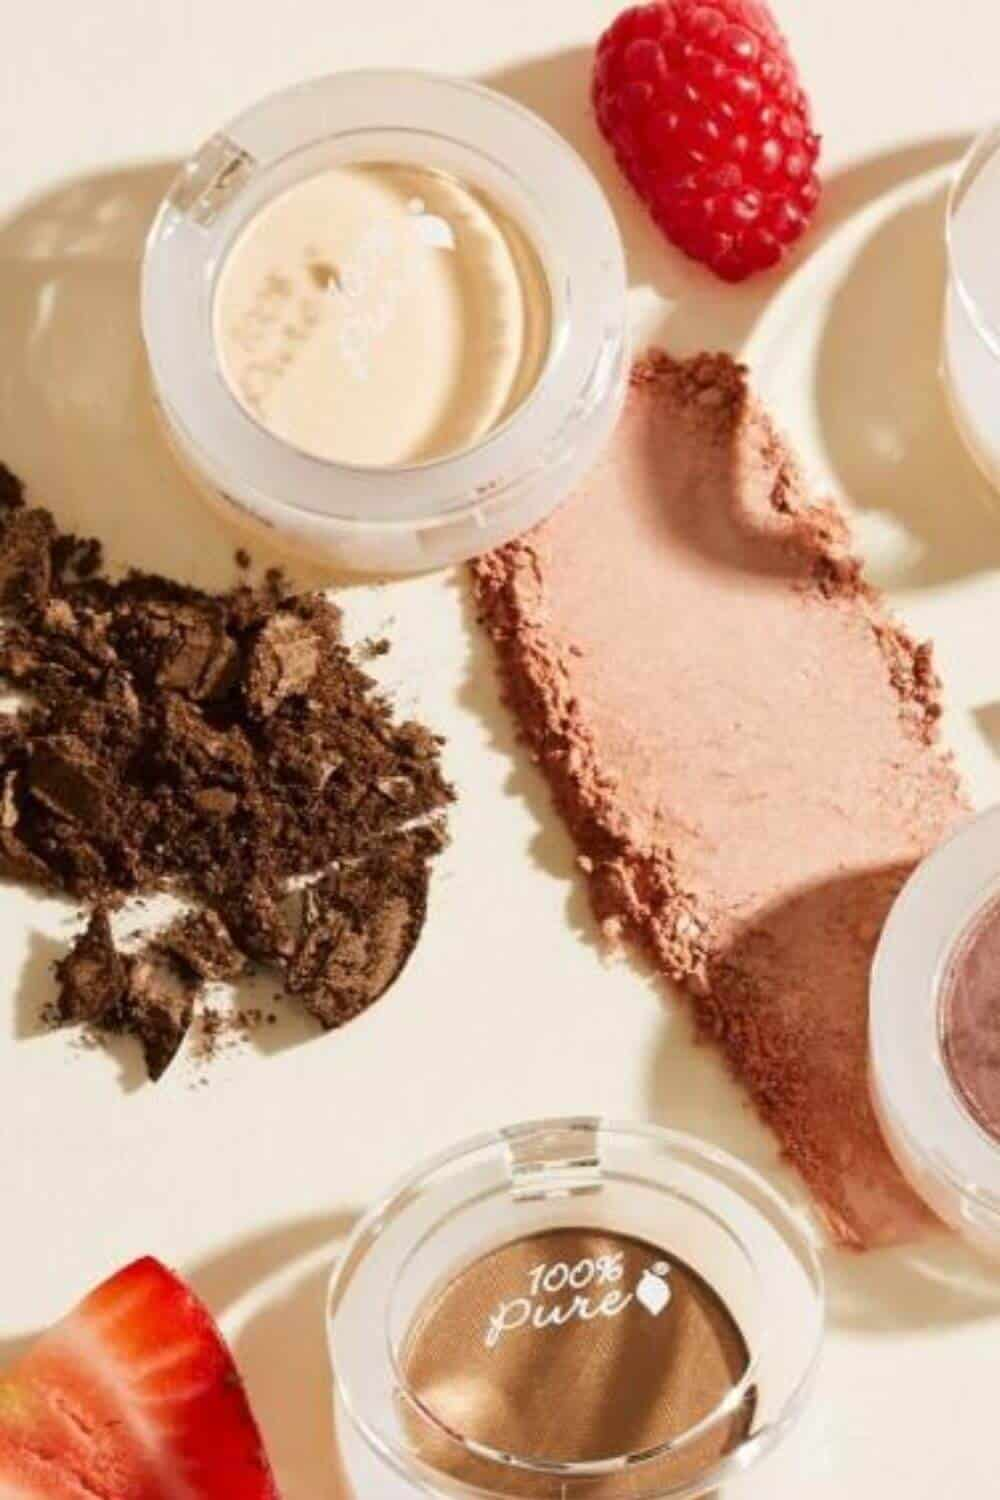 On the look out for sustainable and eco friendly makeup? Thankfully, there are quite a few ethical makeup brands out there to choose from. And many are available and based in the UK and US! Image by 100% Pure #ecofriendlymakeup #sustainablejungle